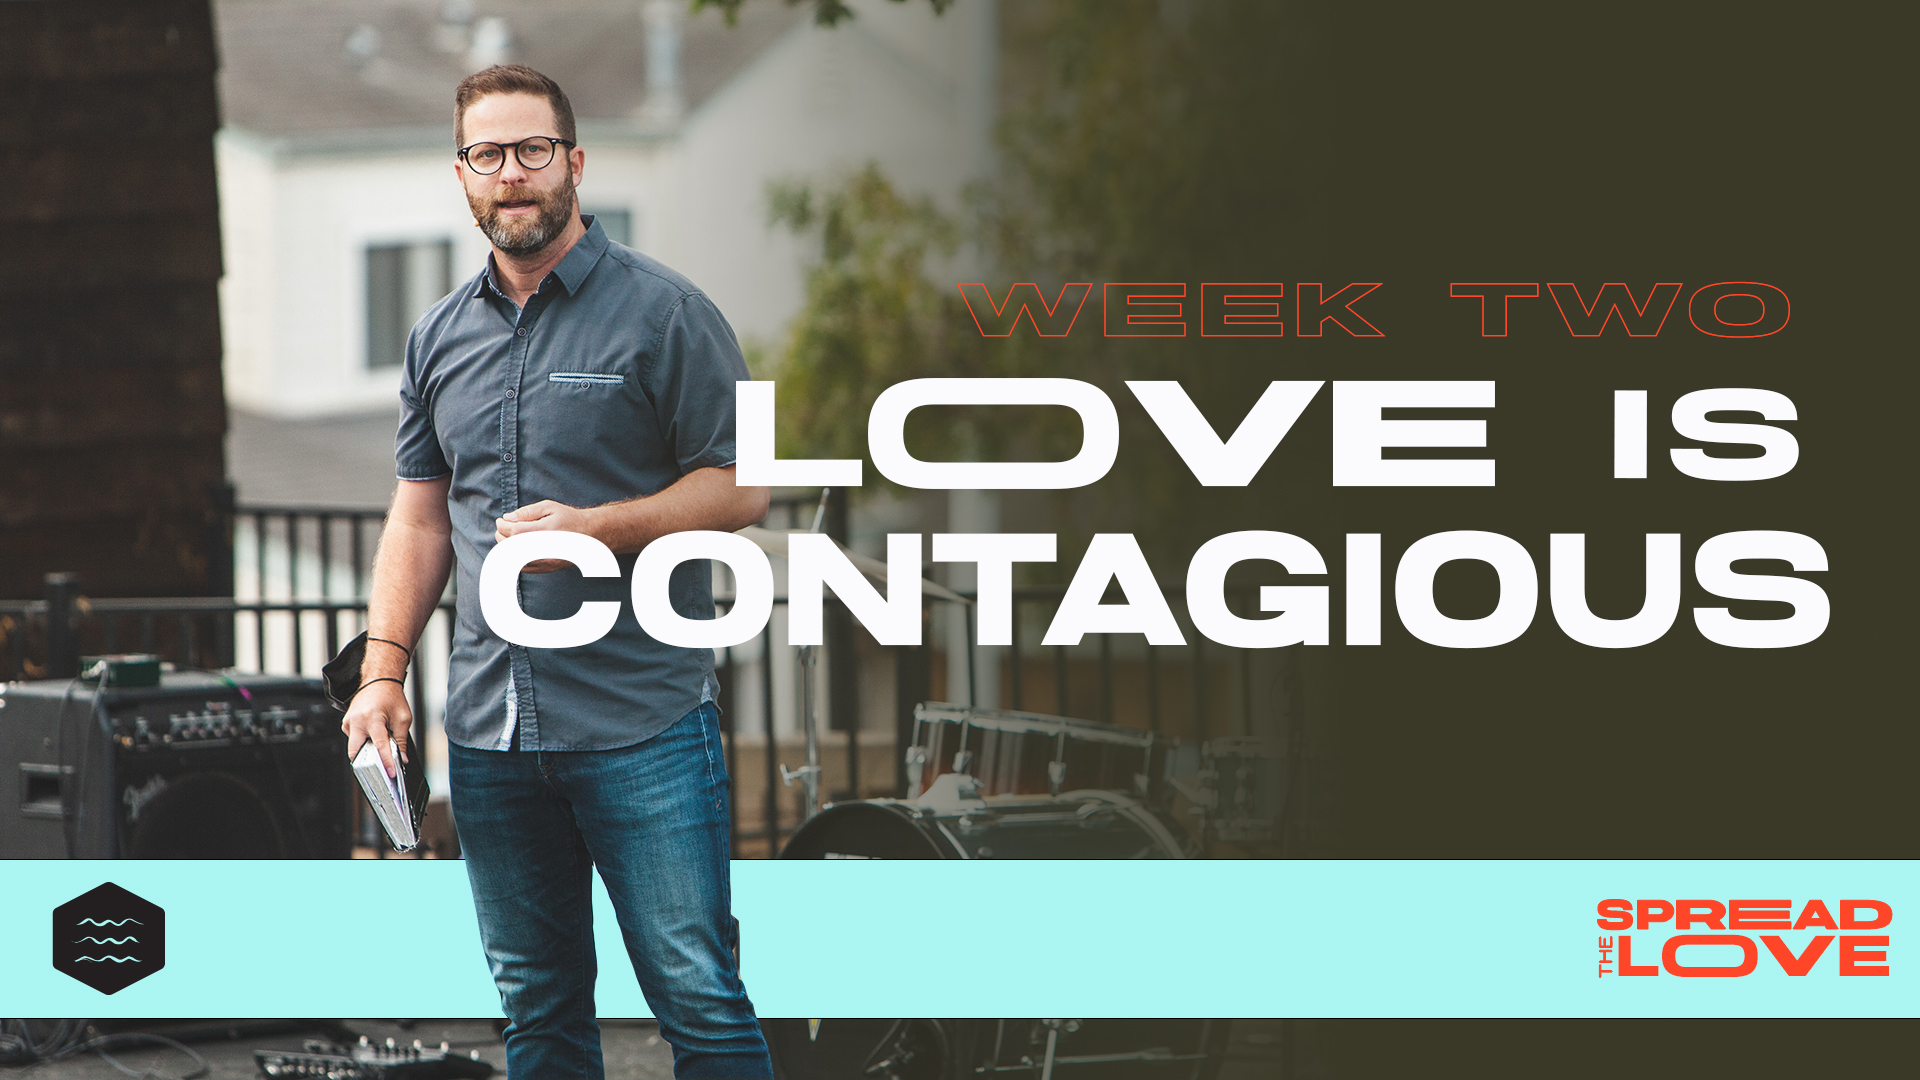 Love is Contagious Image